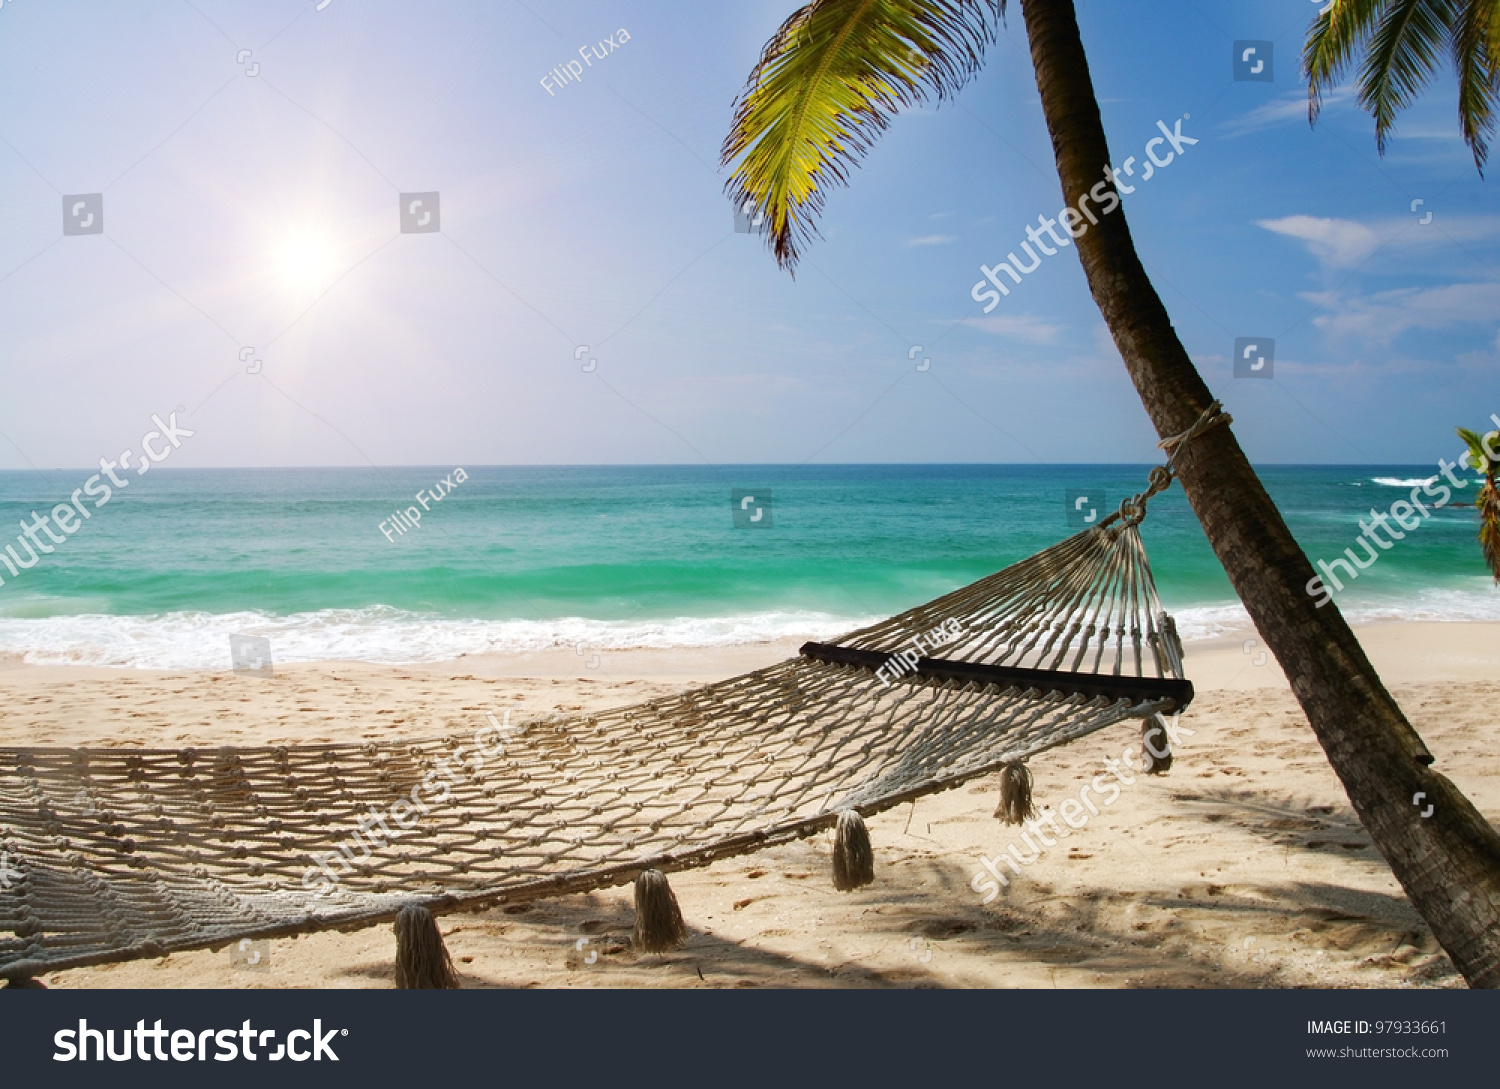 Romantic Pictures Of Tropical Beaches: Romantic Cozy Hammock Shadow Palm On Stock Photo 97933661